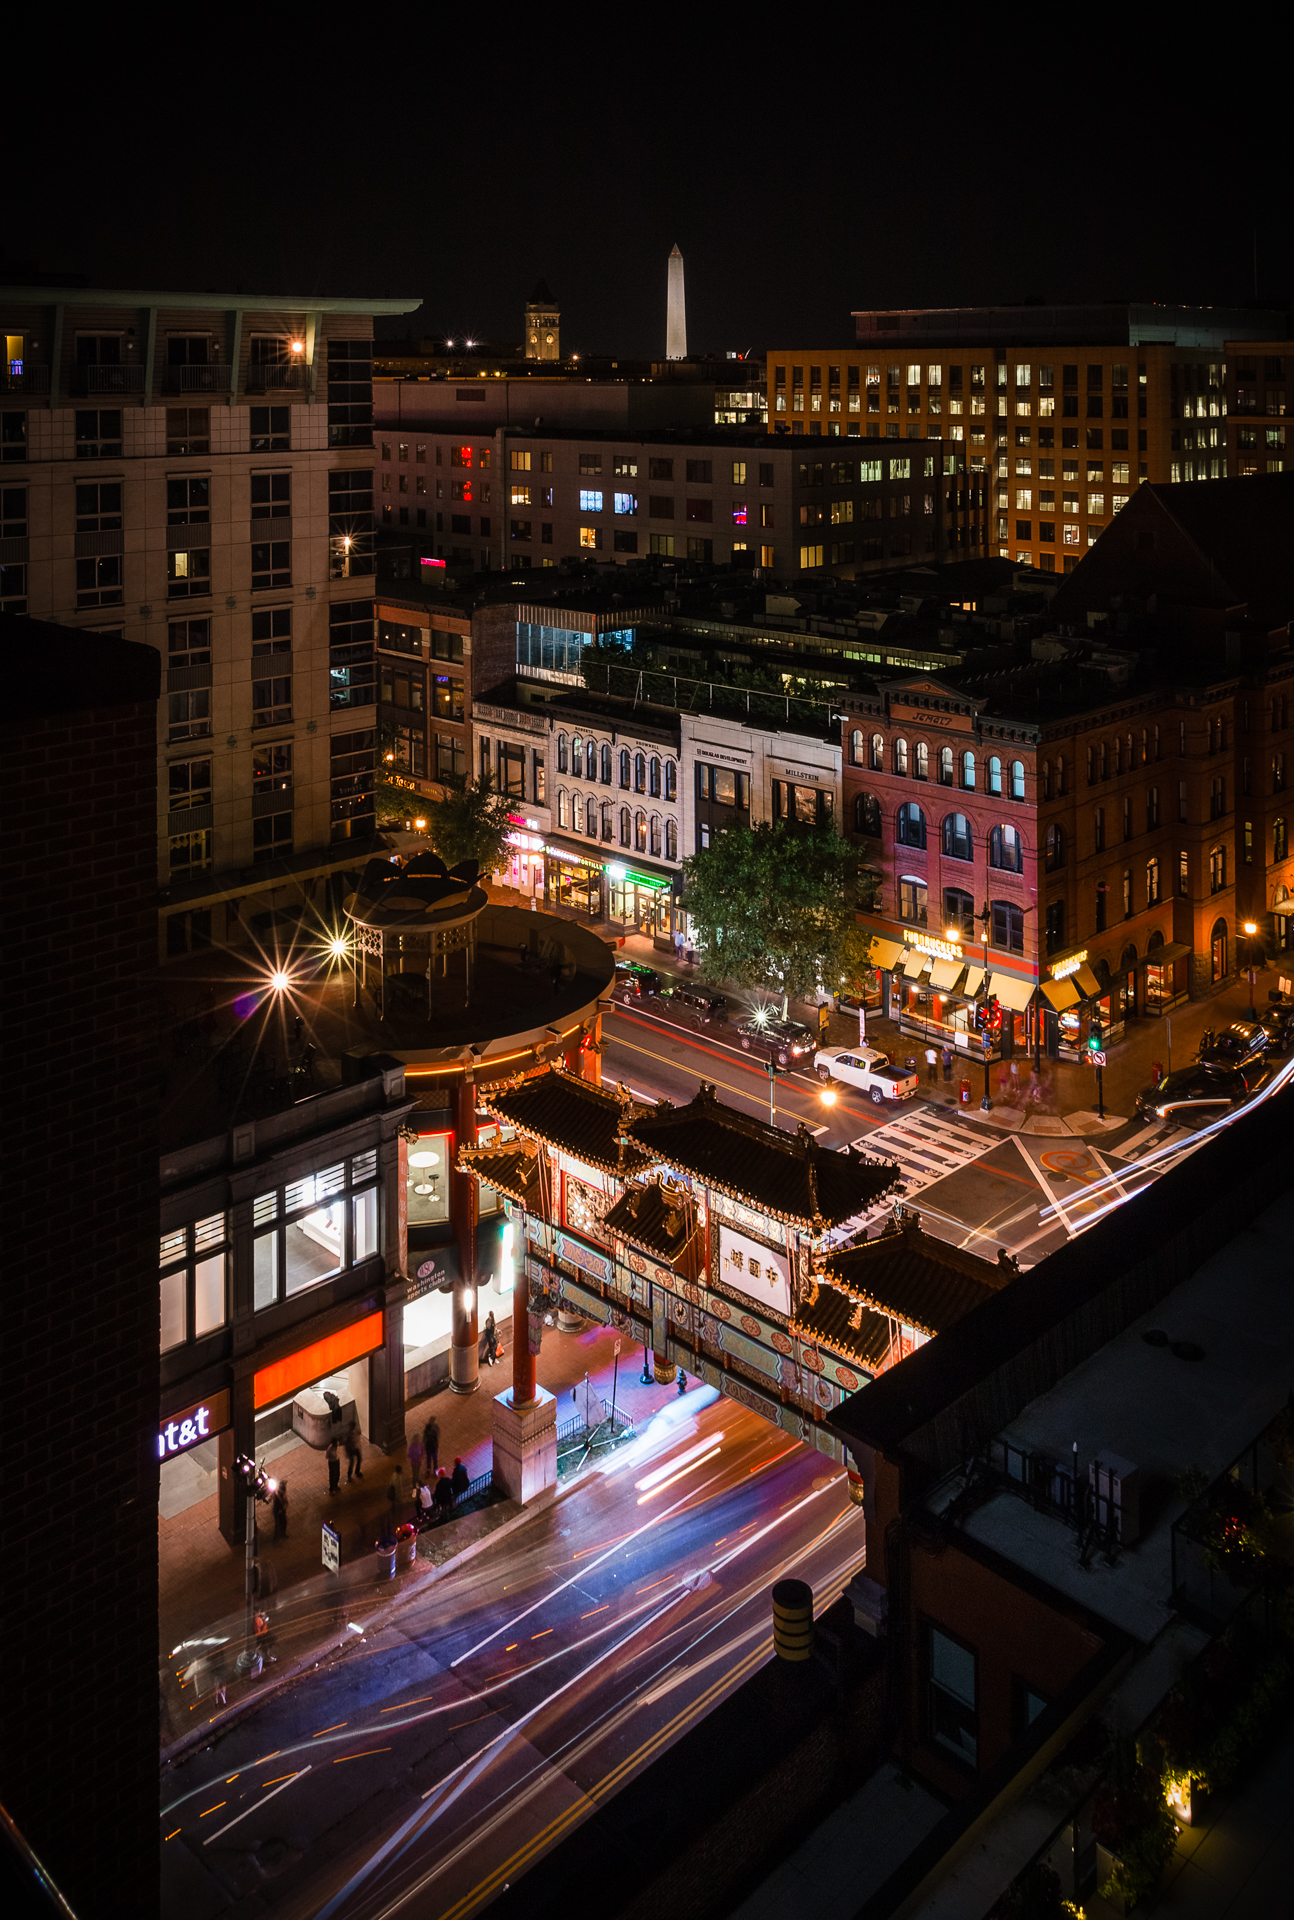 Chinatown Nights – Chinatown seen from above at night{&amp;nbsp;}(Image: Zack Lewkowicz)<p></p>